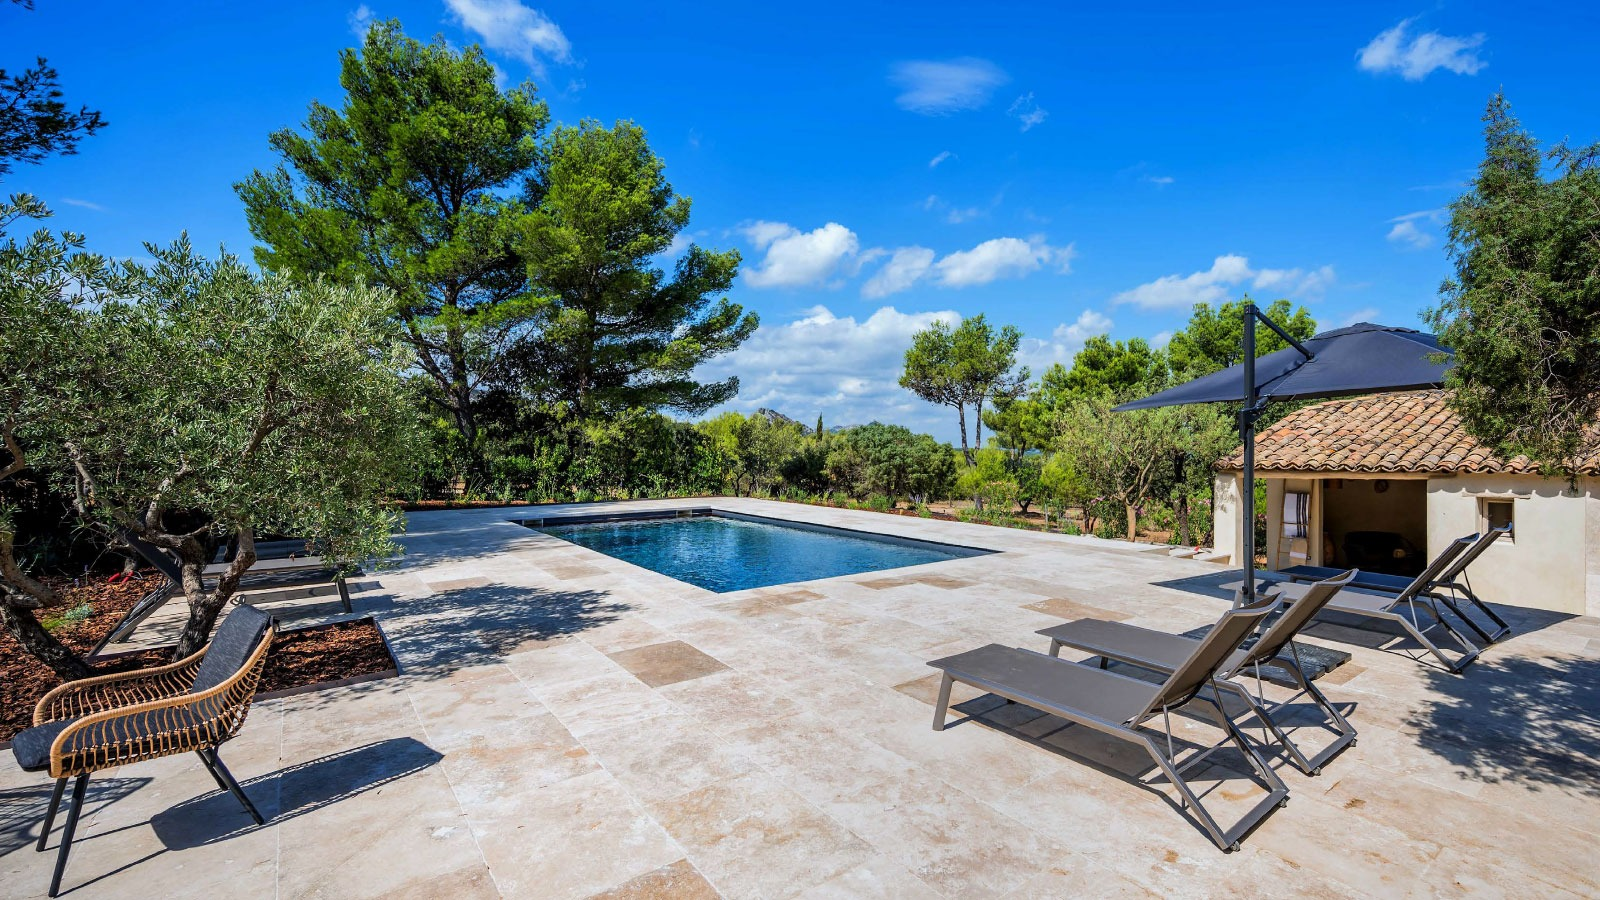 Luxurious villa for vacations in provence with swimming pool